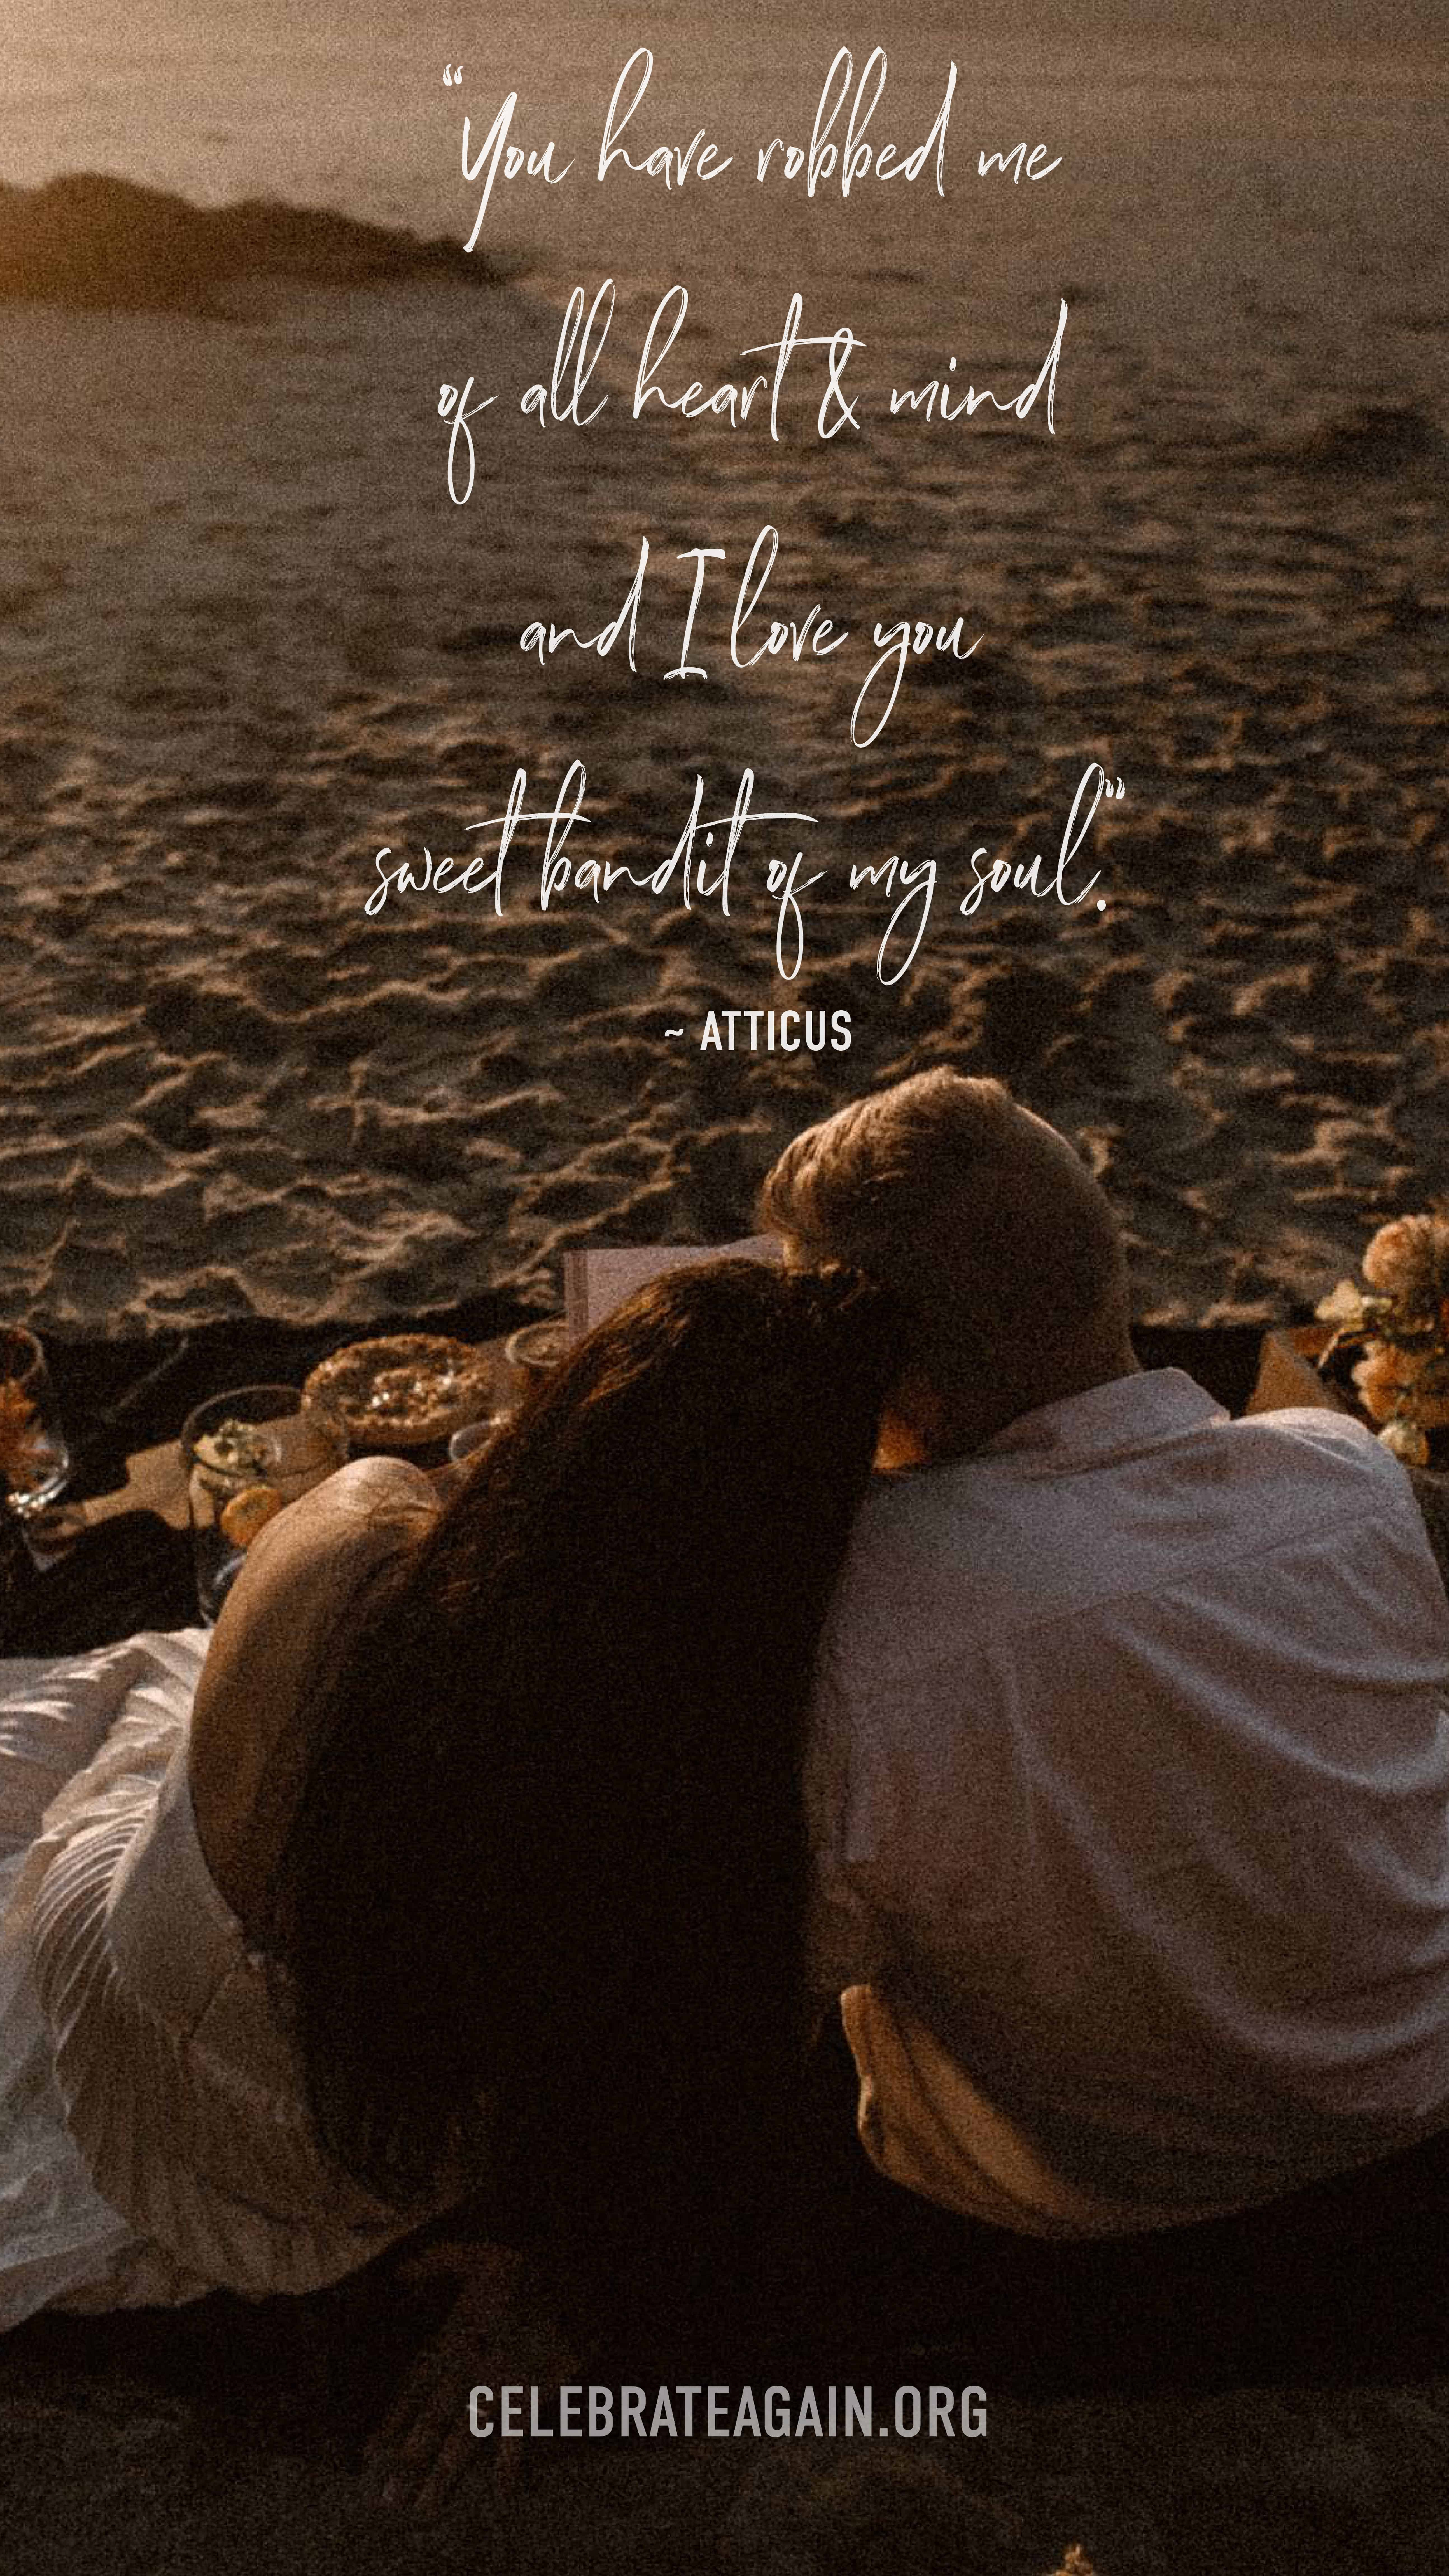 """romantic love quote for her """"You have robbed me of all heart & mind and I love you sweet bandit of my soul."""" ― Atticus Poetry, The Truth About Magic image of couple cuddling on a beach at sunset image by celebrateagain"""